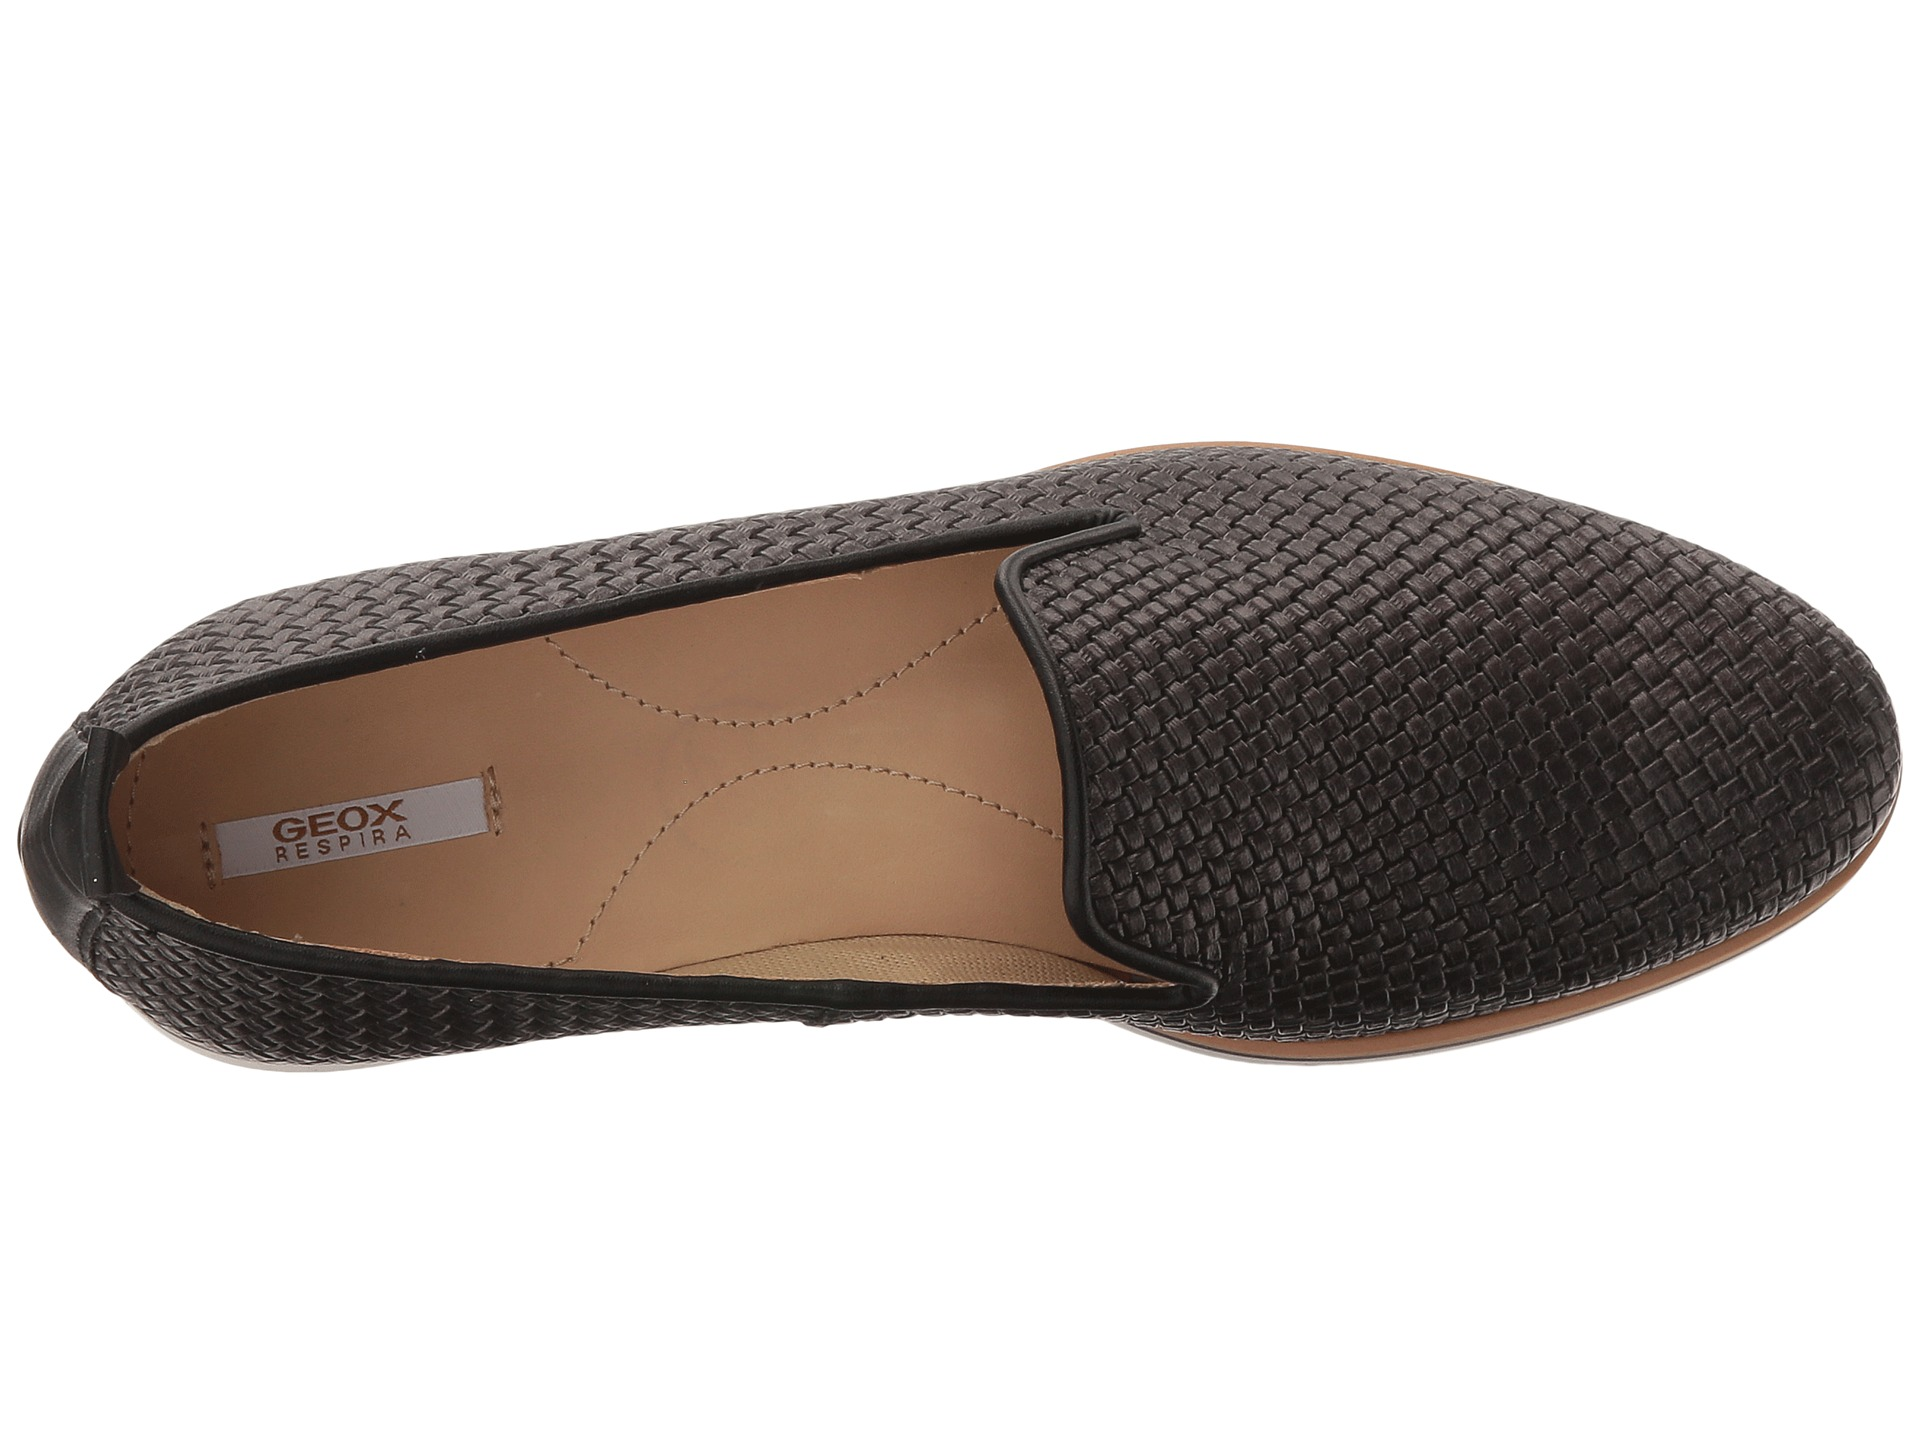 Most Comfortable Slip On Shoes For Men Images House Ideas Interior